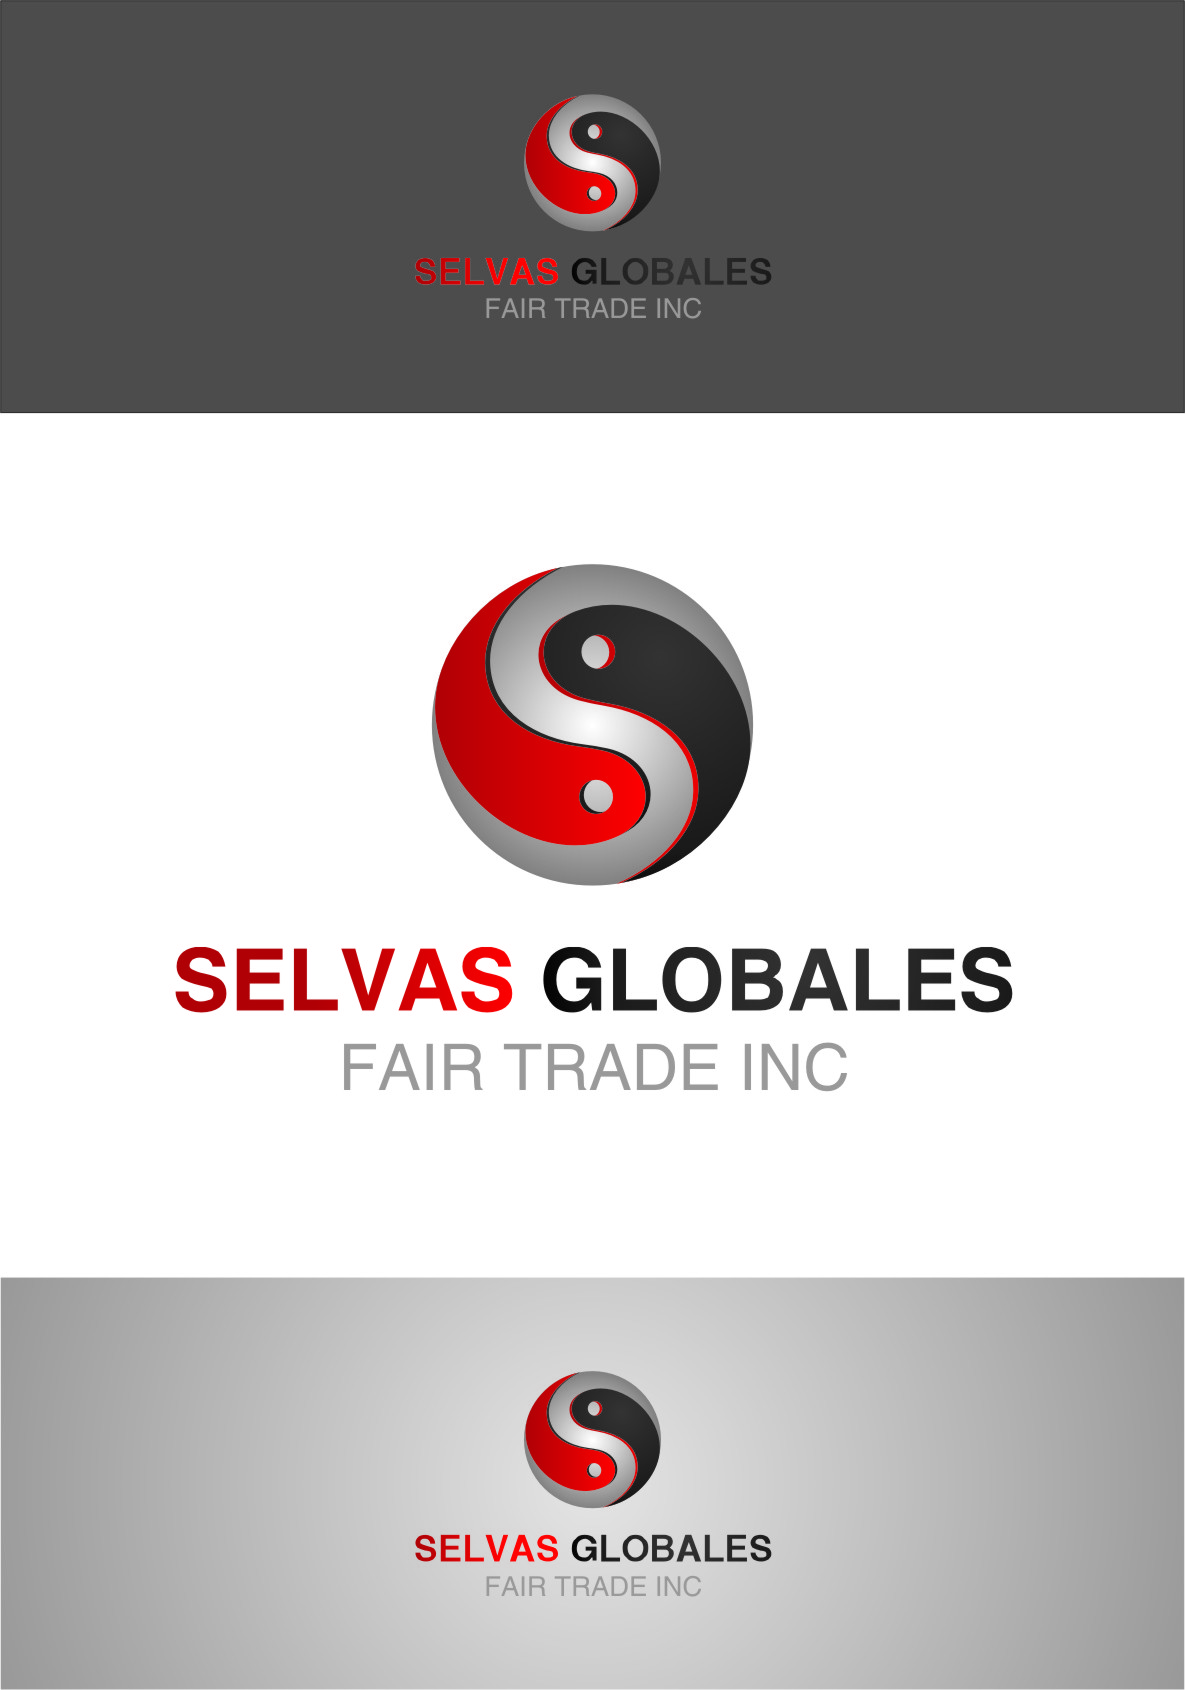 Logo Design by Ngepet_art - Entry No. 68 in the Logo Design Contest Captivating Logo Design for Selvas Globales Fair Trade Inc..